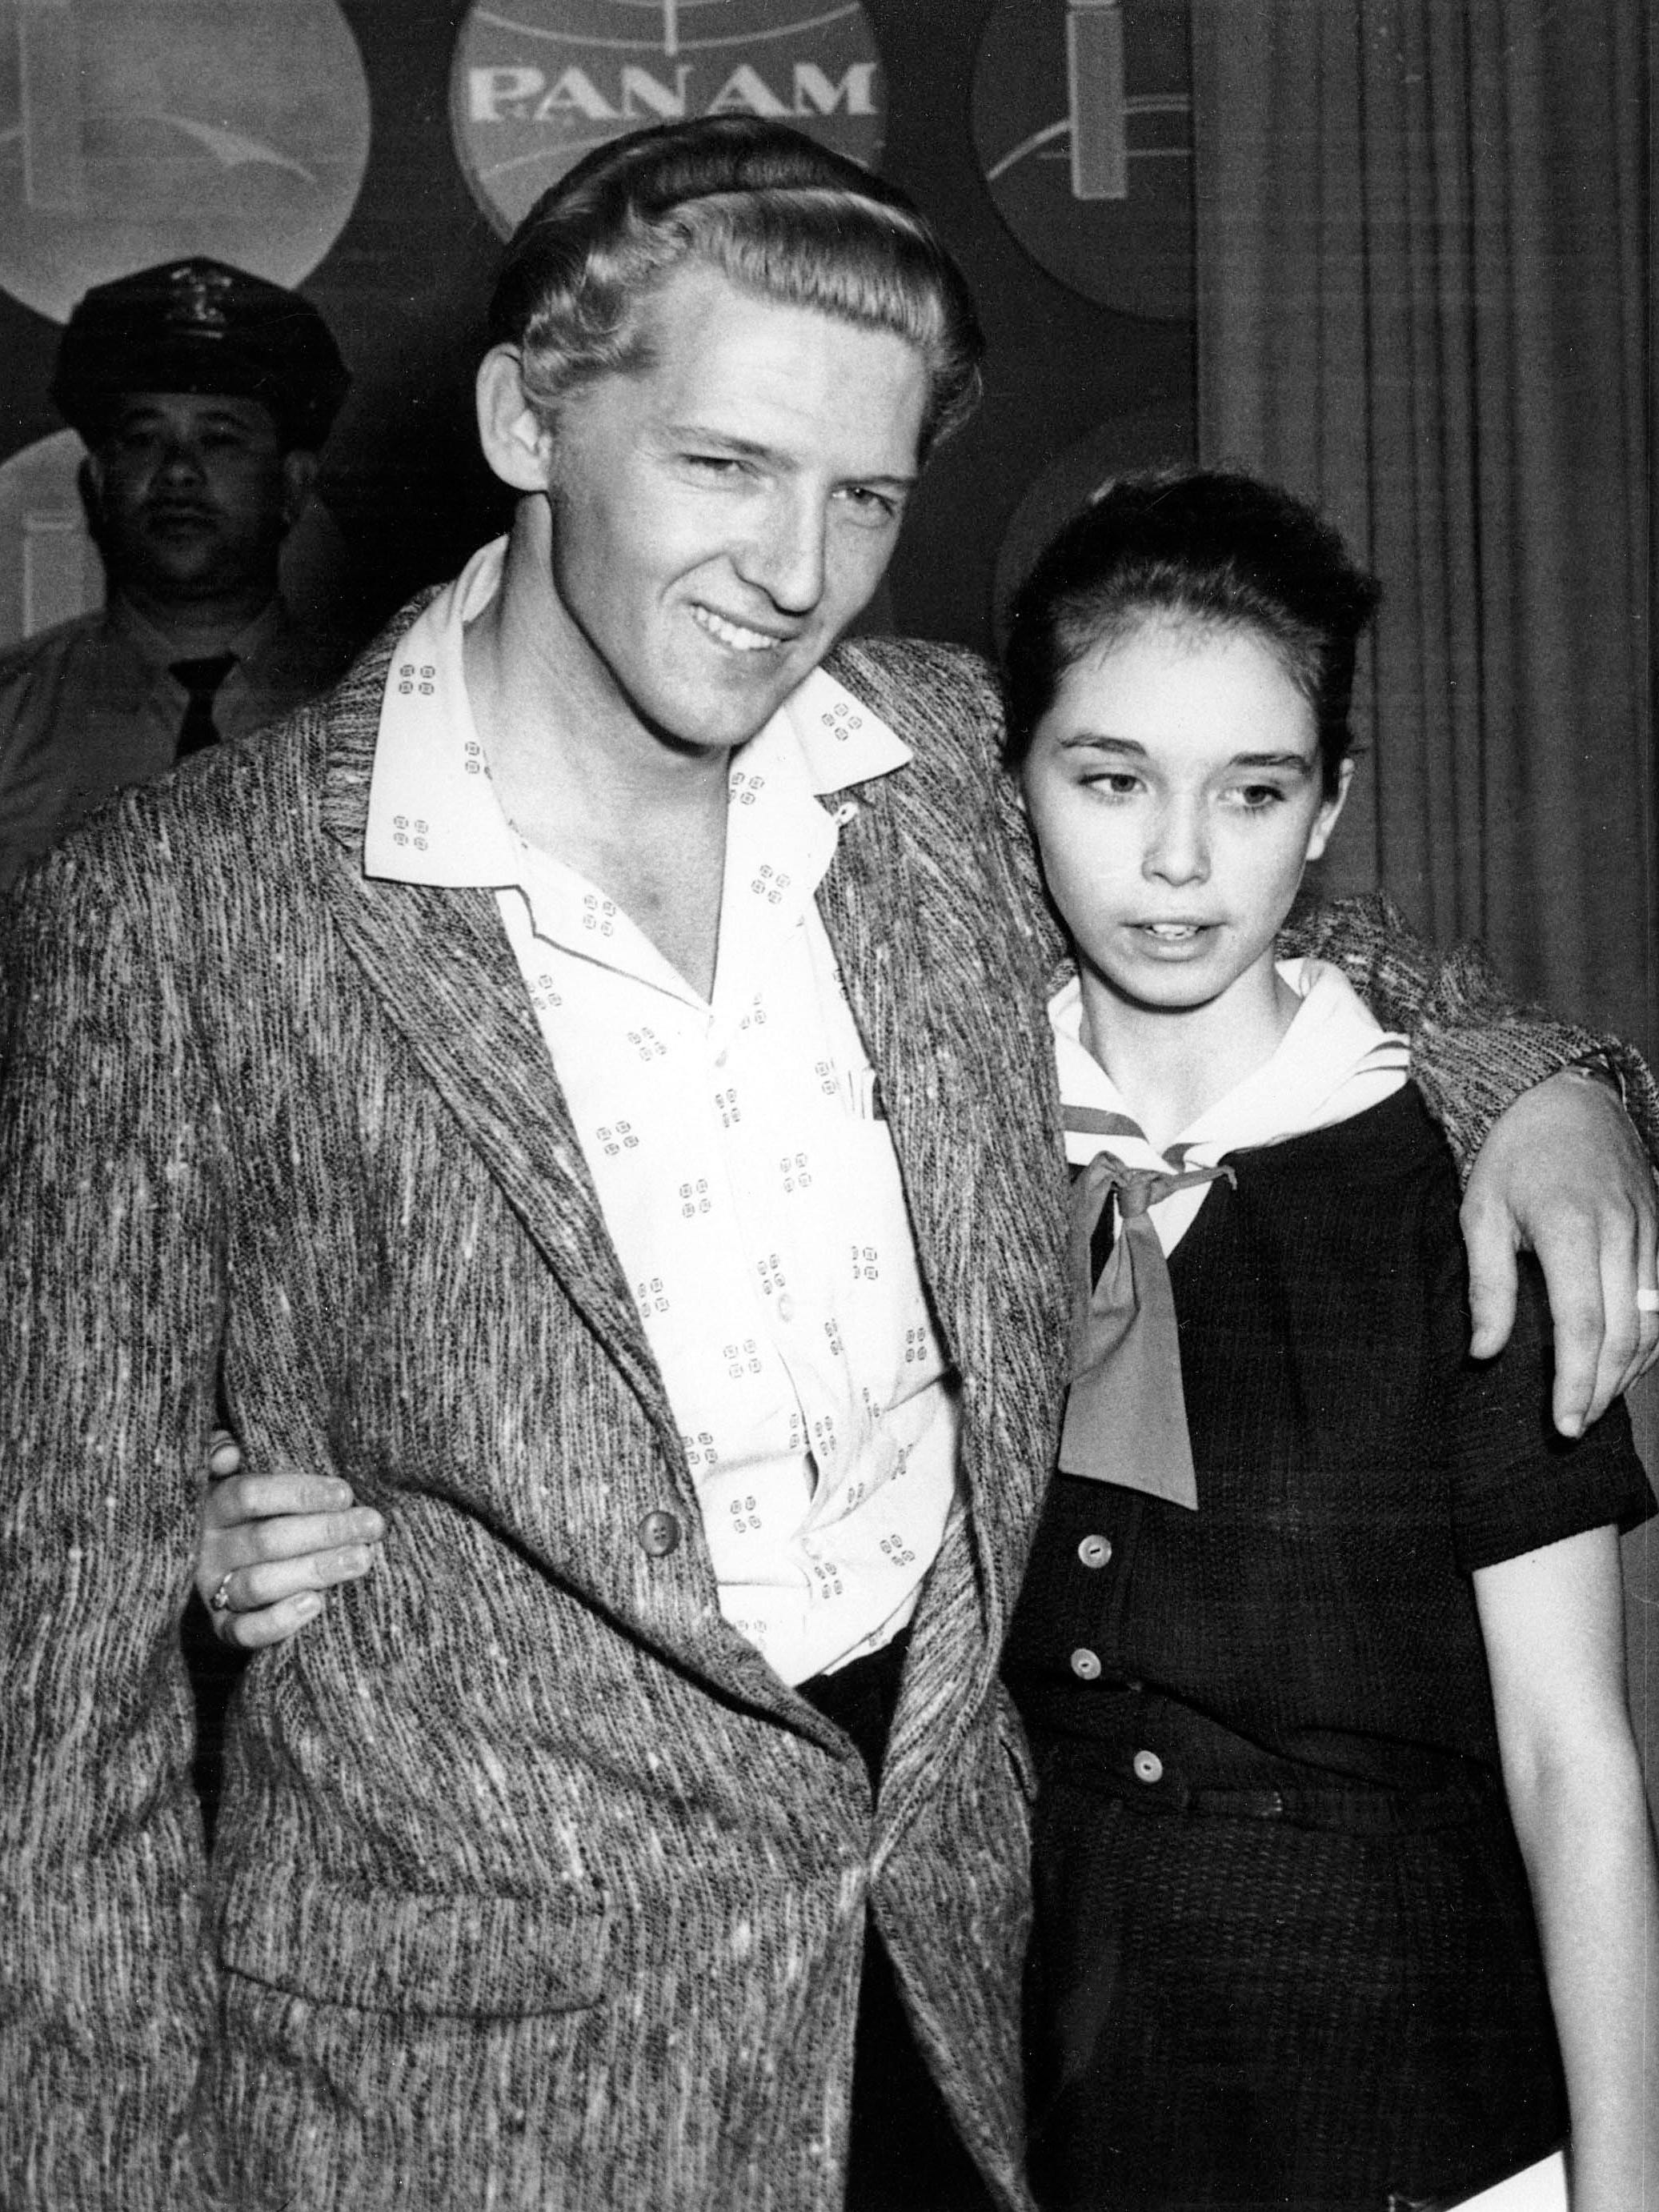 Myra Williams, Jerry Lee Lewis' 13-year-old bride, speaks out